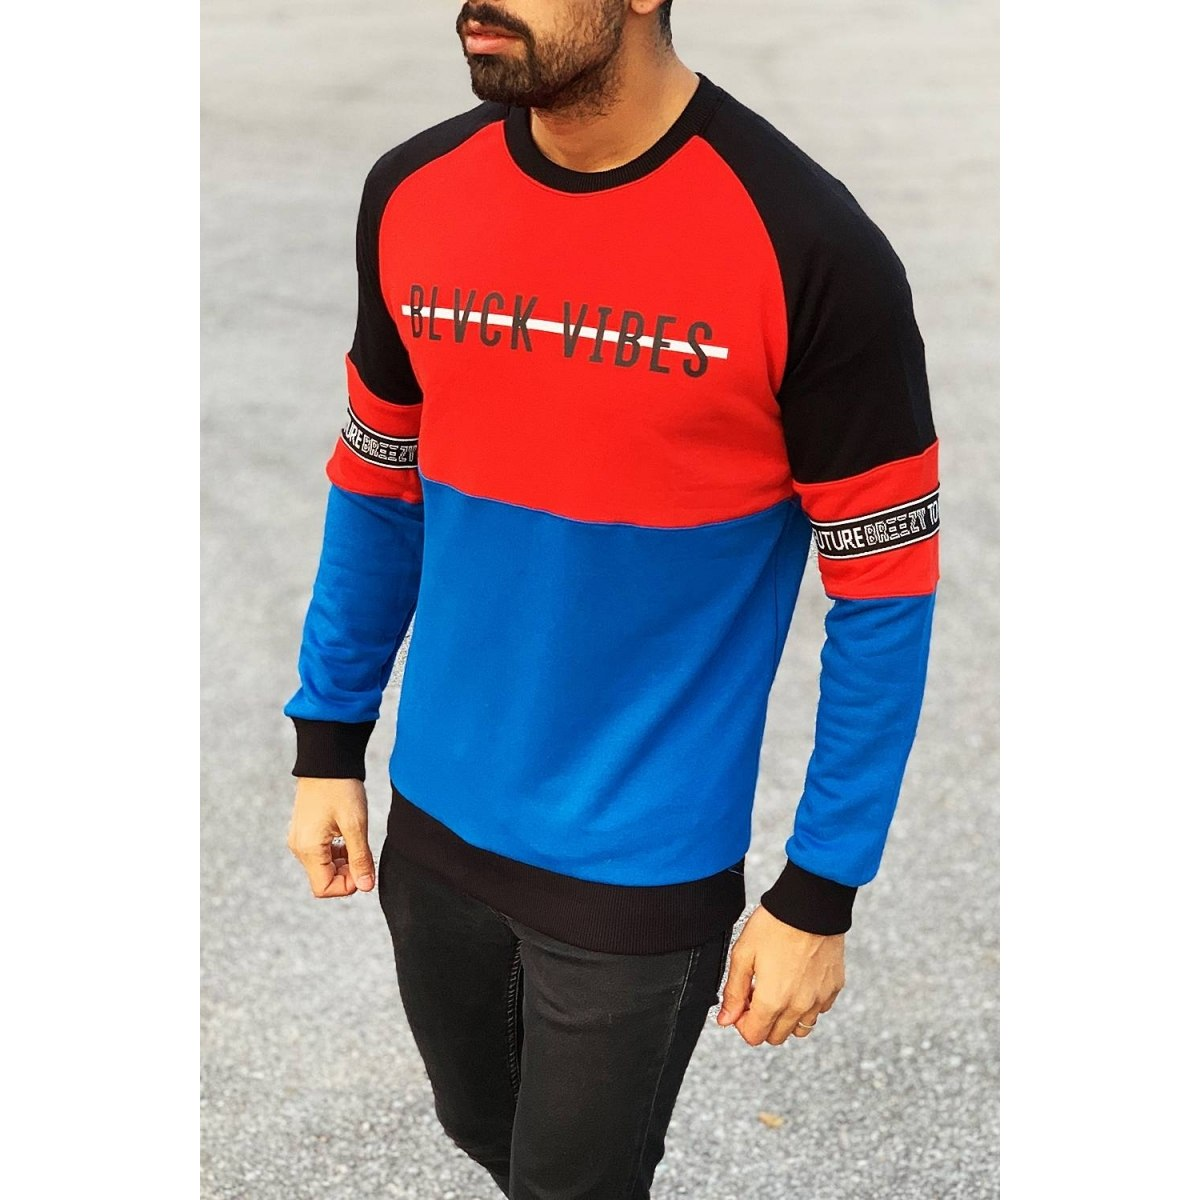 Blvck Vibes Sweatshirt in Red&Blue Mv Premium Brand - 2